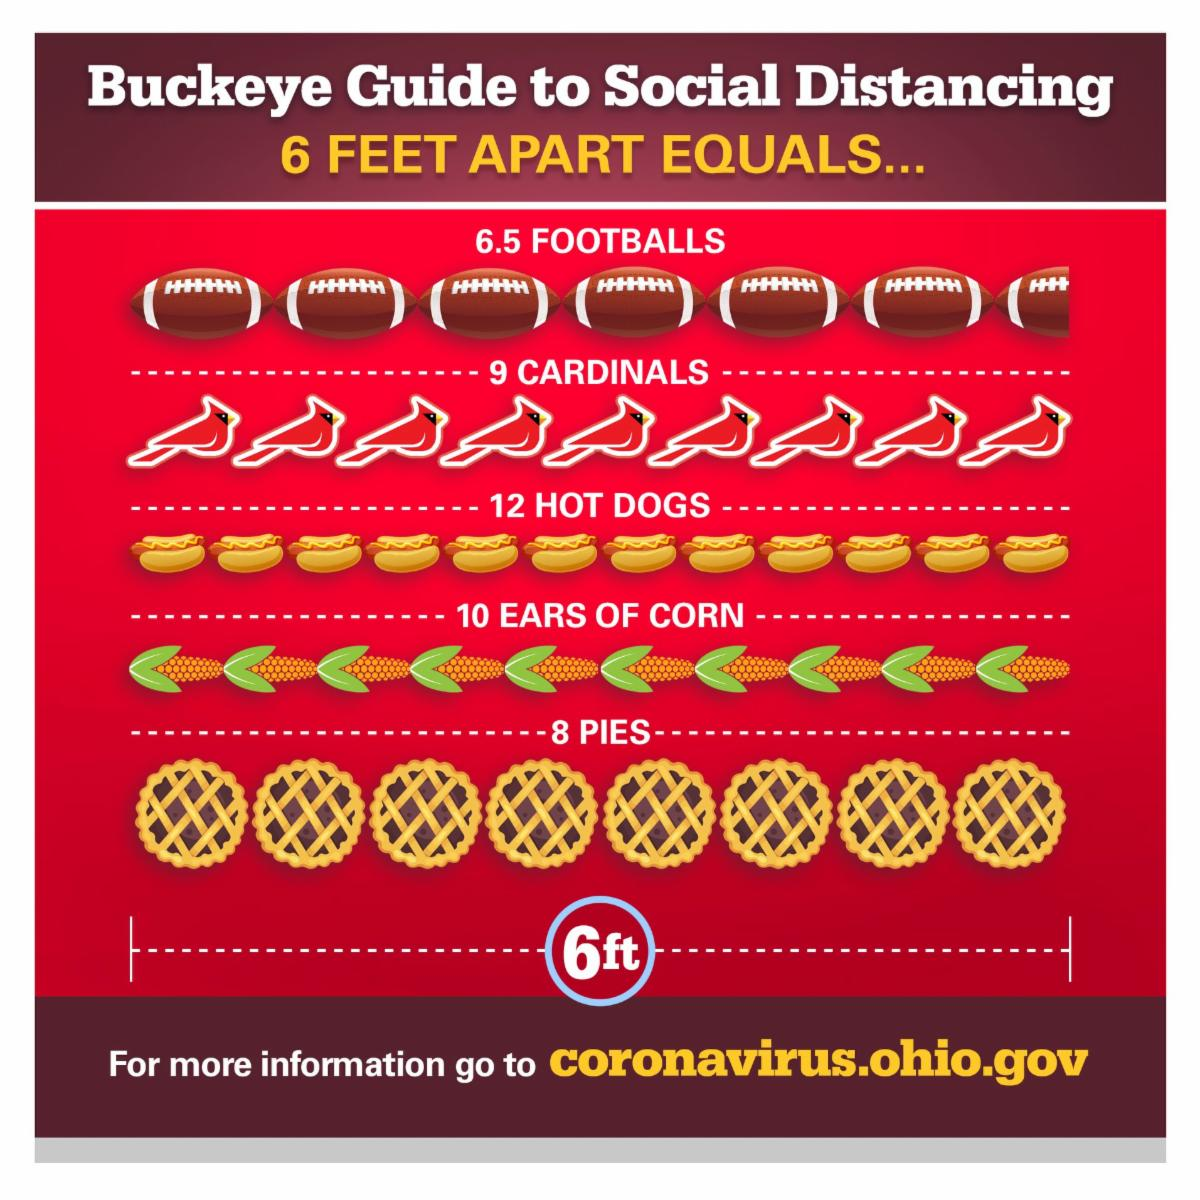 Ohio Department of Health's Buckeye Guide to Social Distancing measured in footballs, cardinals, hot dogs, ears of corn, and pies. For more information visit coronavirus.ohio.gov